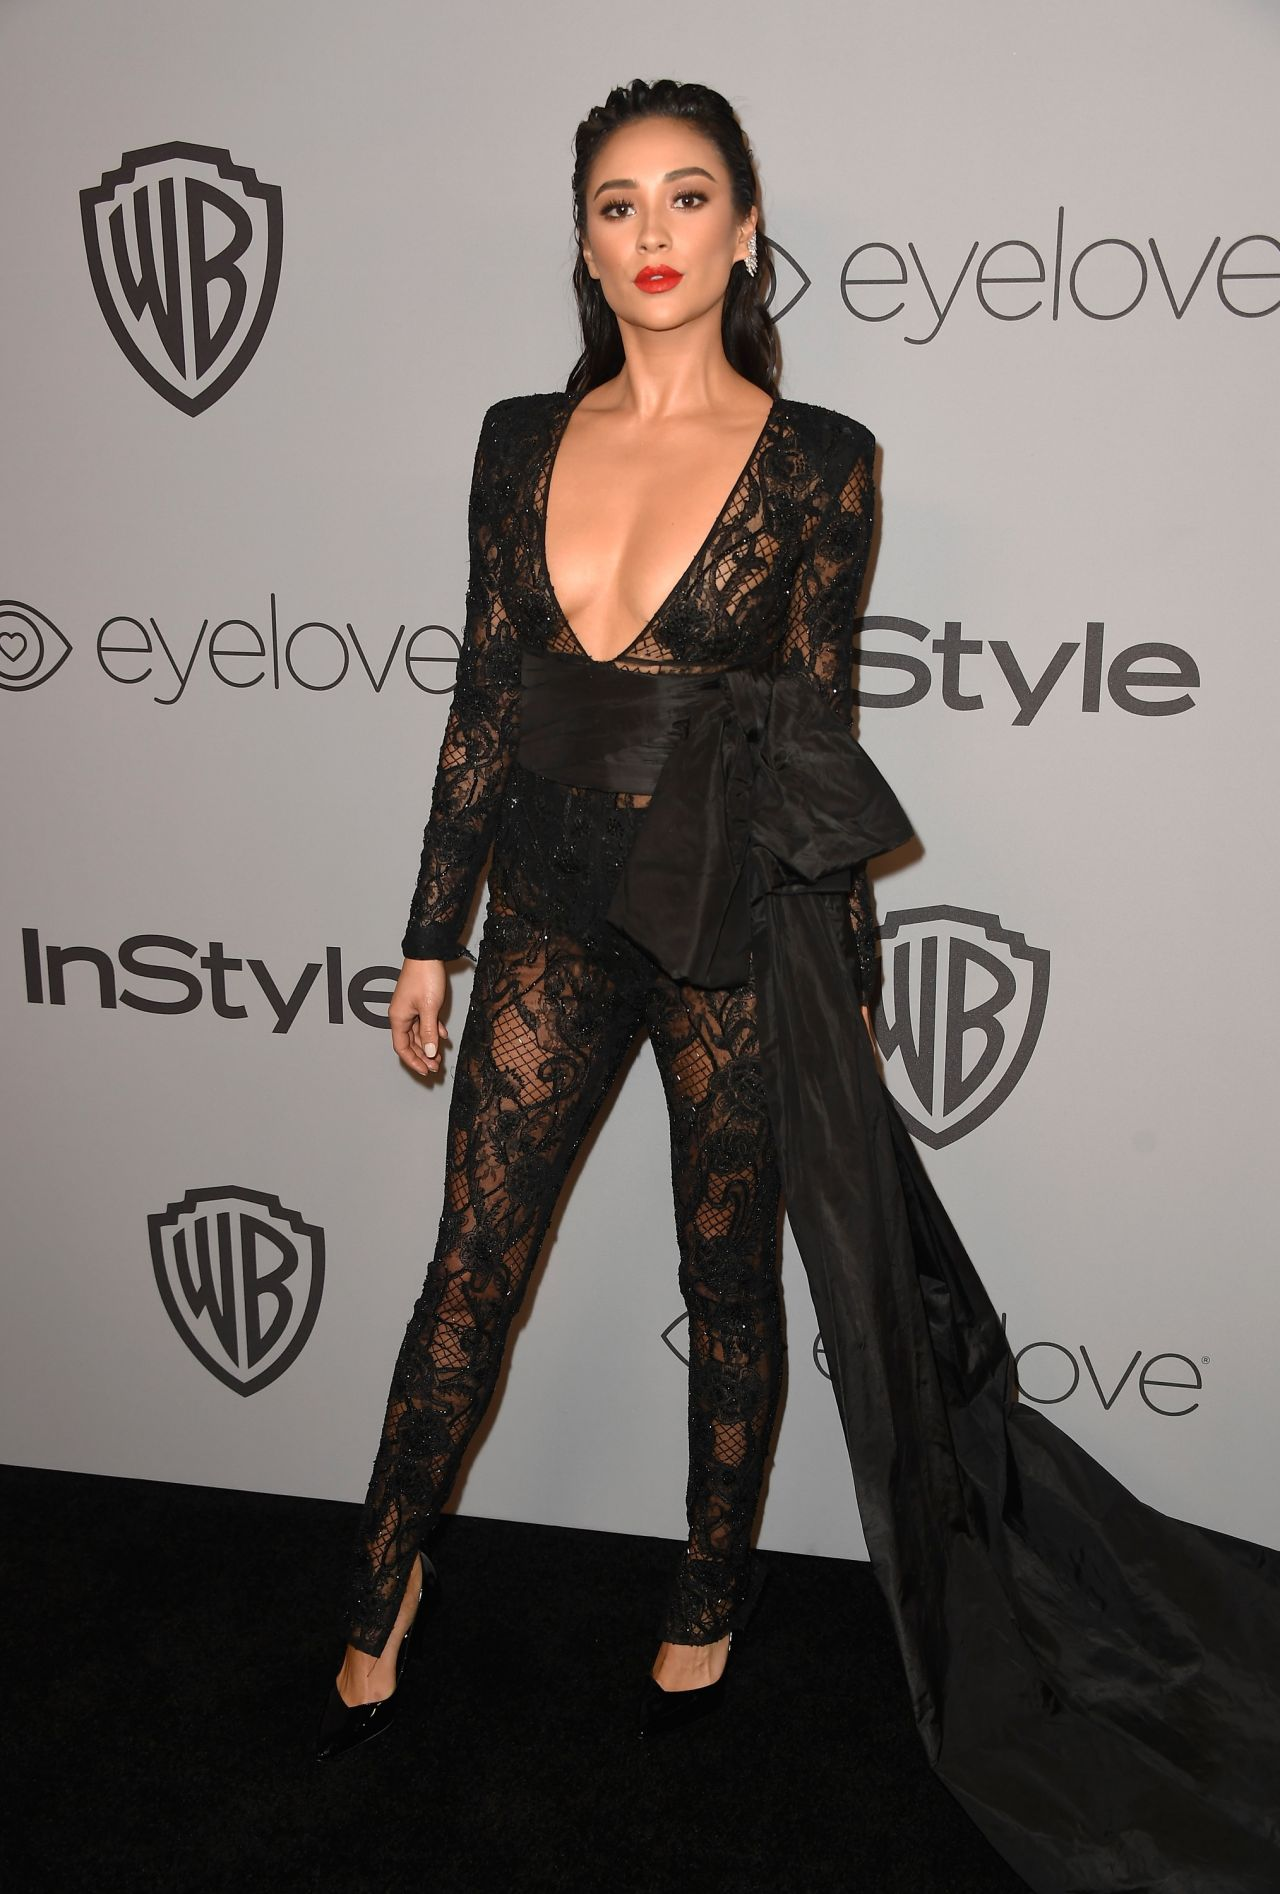 http://celebmafia.com/wp-content/uploads/2018/01/shay-mitchell-instyle-and-warner-bros-golden-globes-2018-after-party-1.jpg